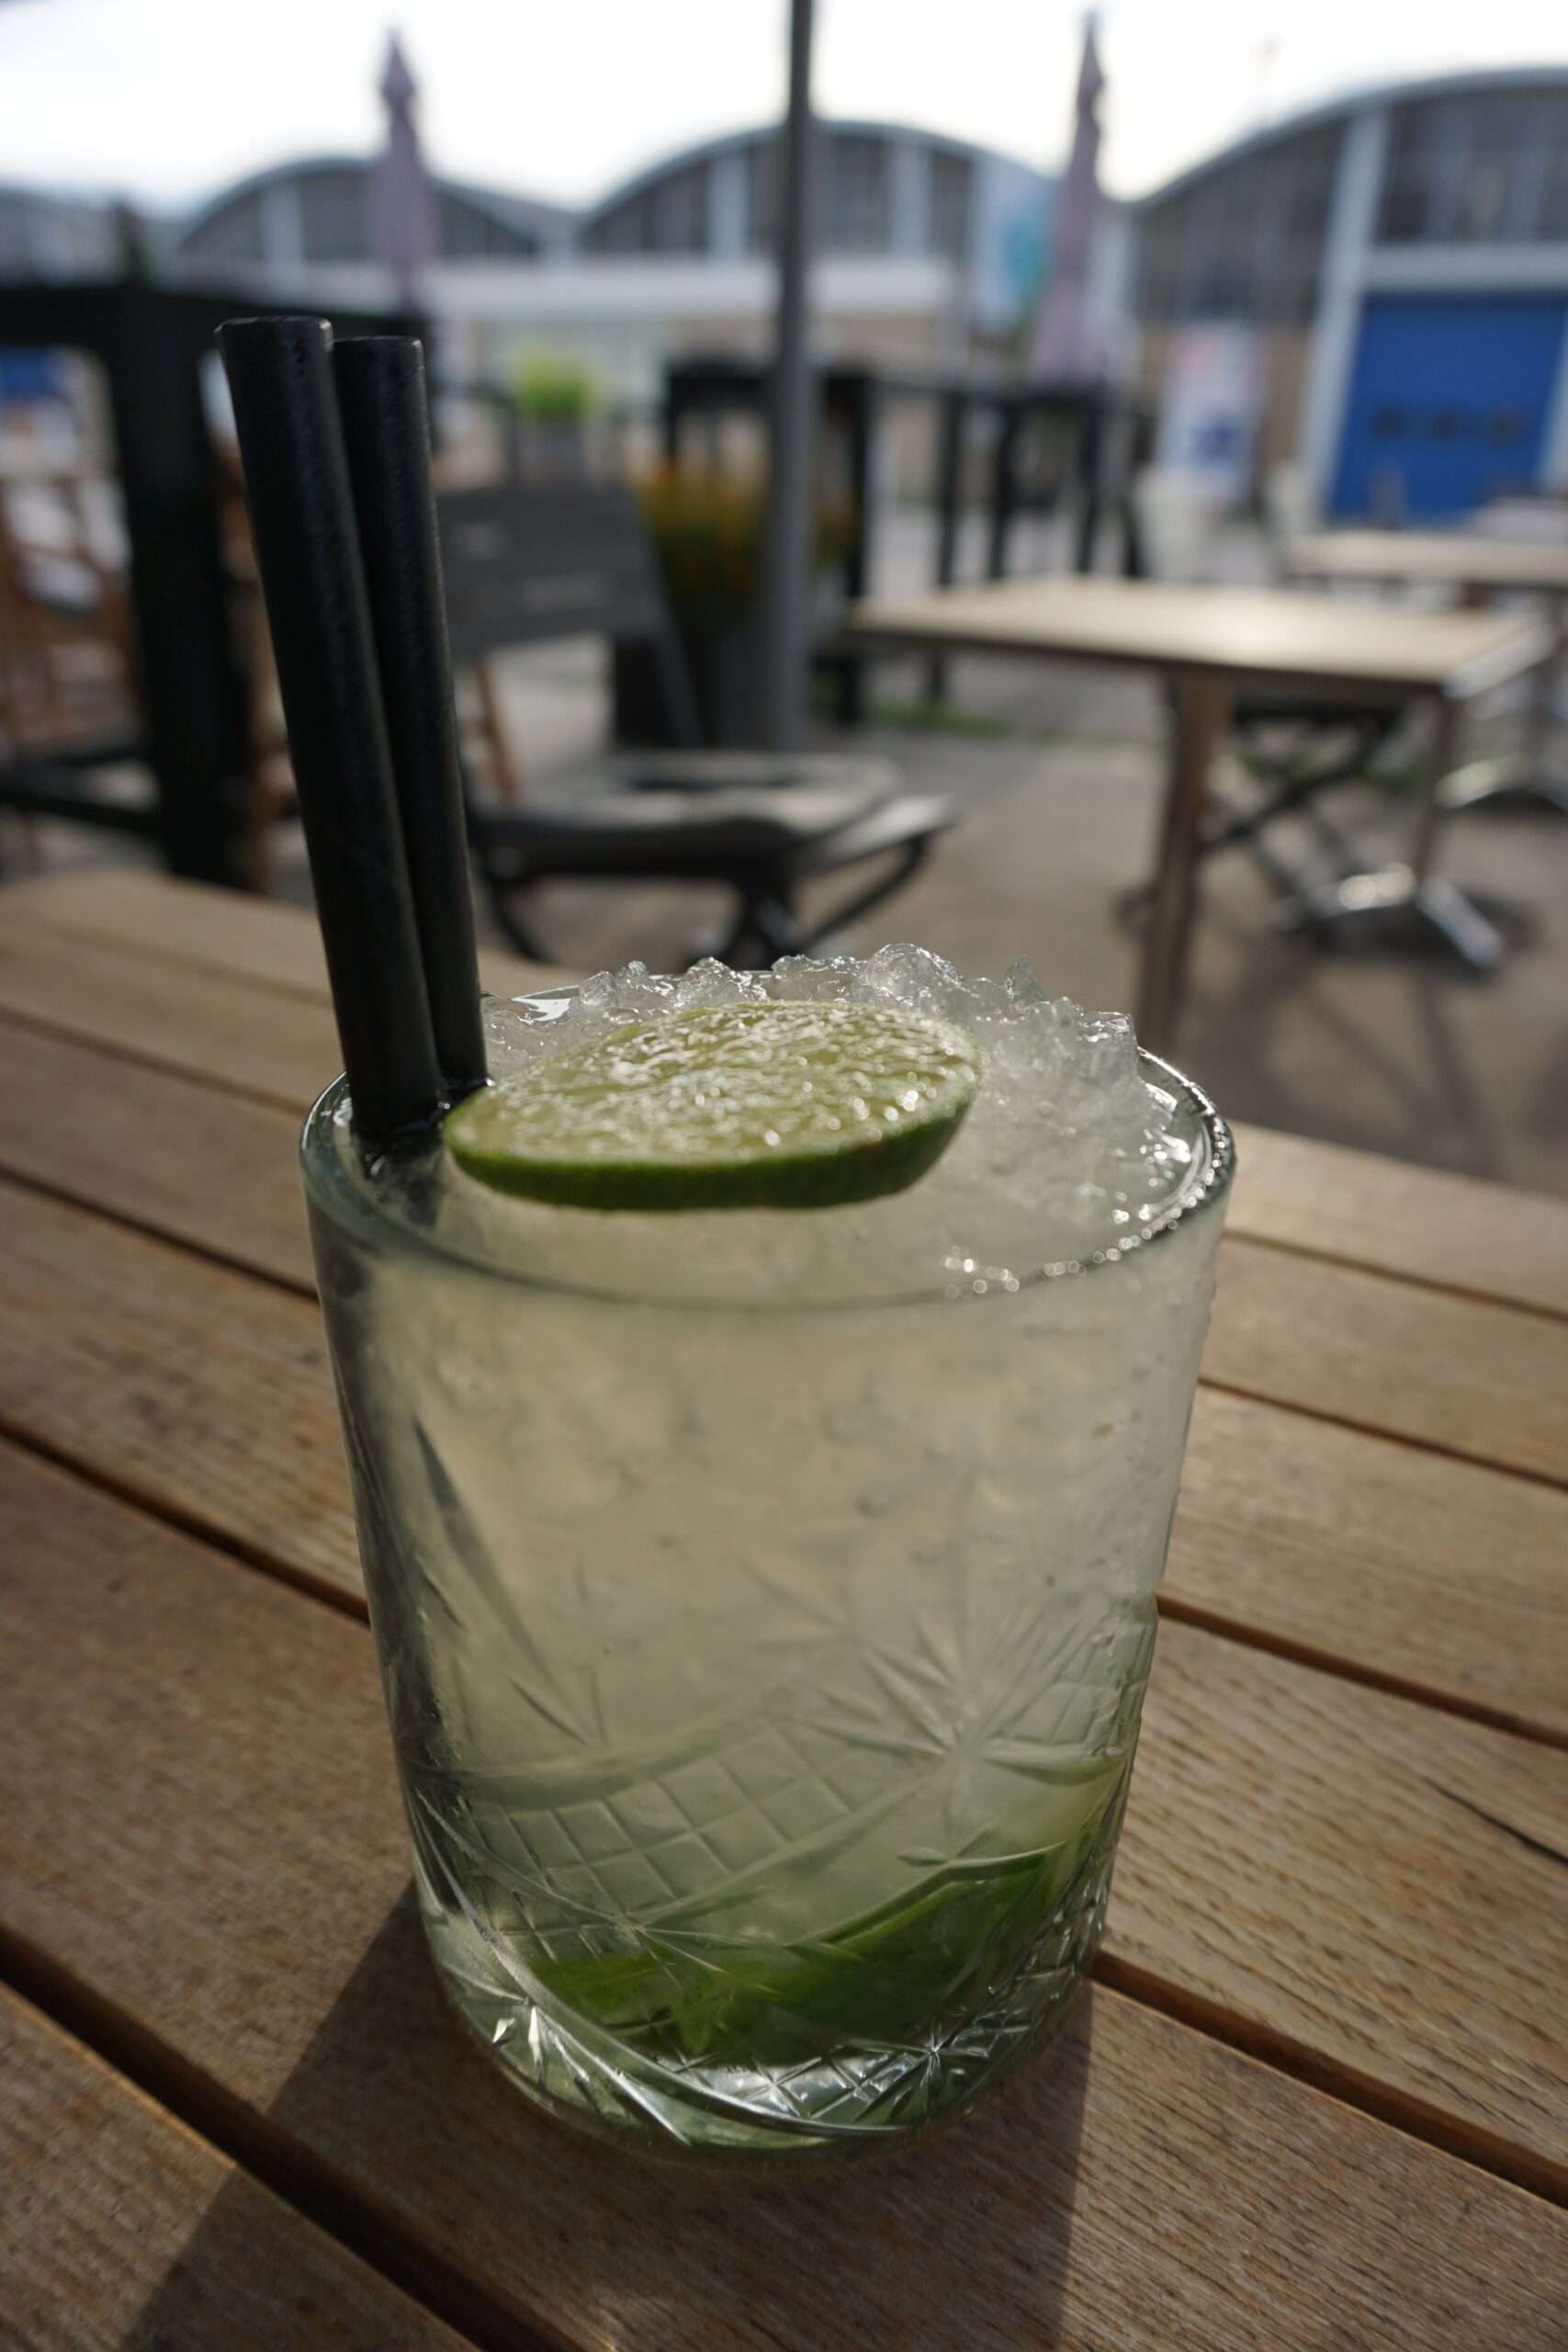 crystal glass with mojito cocktail topped with lime wedge and 2 black straws, on a wooden table at Bottle Distillery Eindhoven